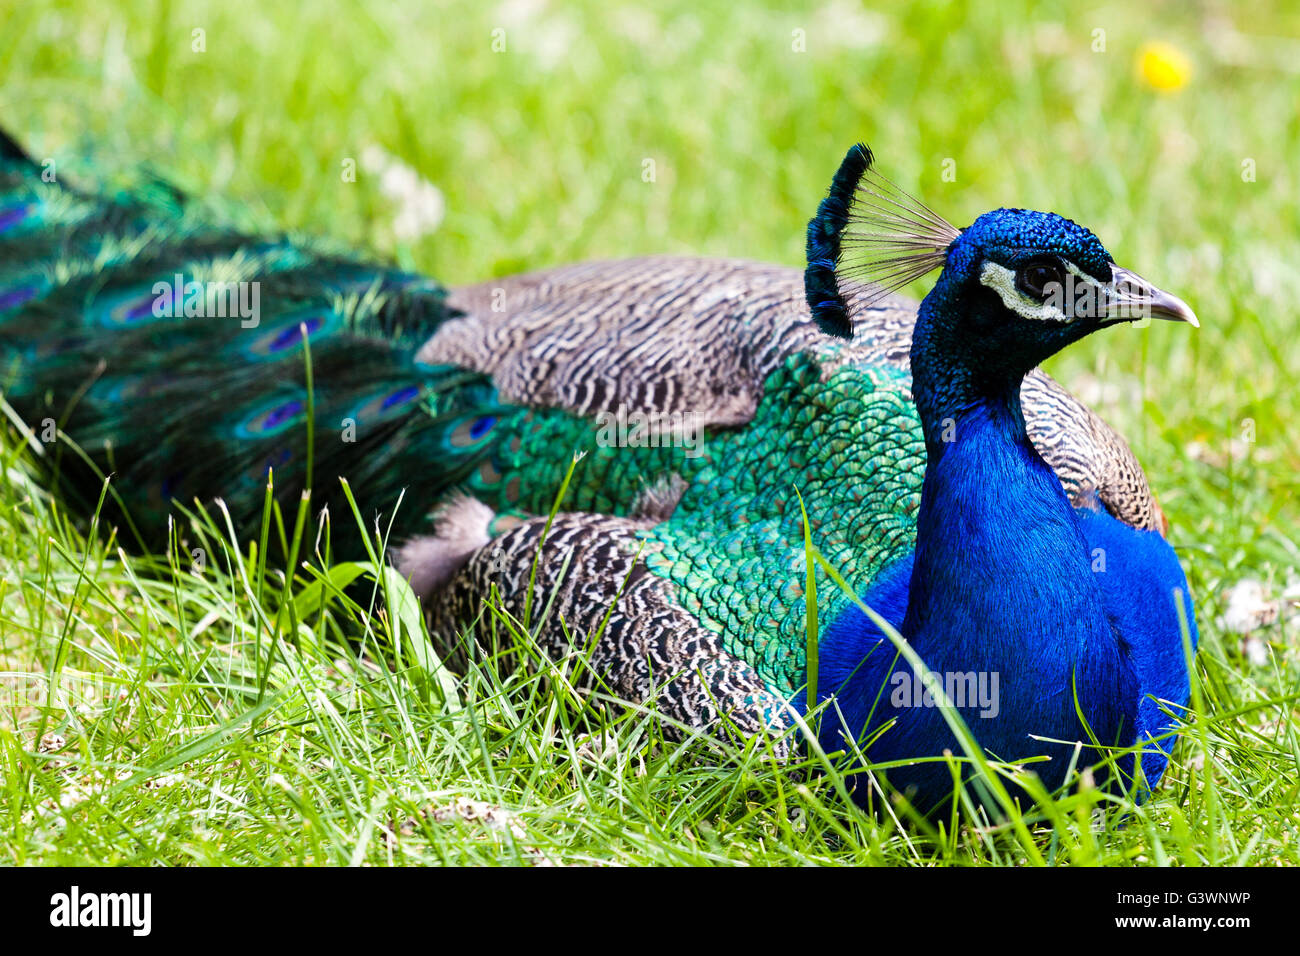 A peacock resting in the wild, with focus on its head and its blue crest. - Stock Image